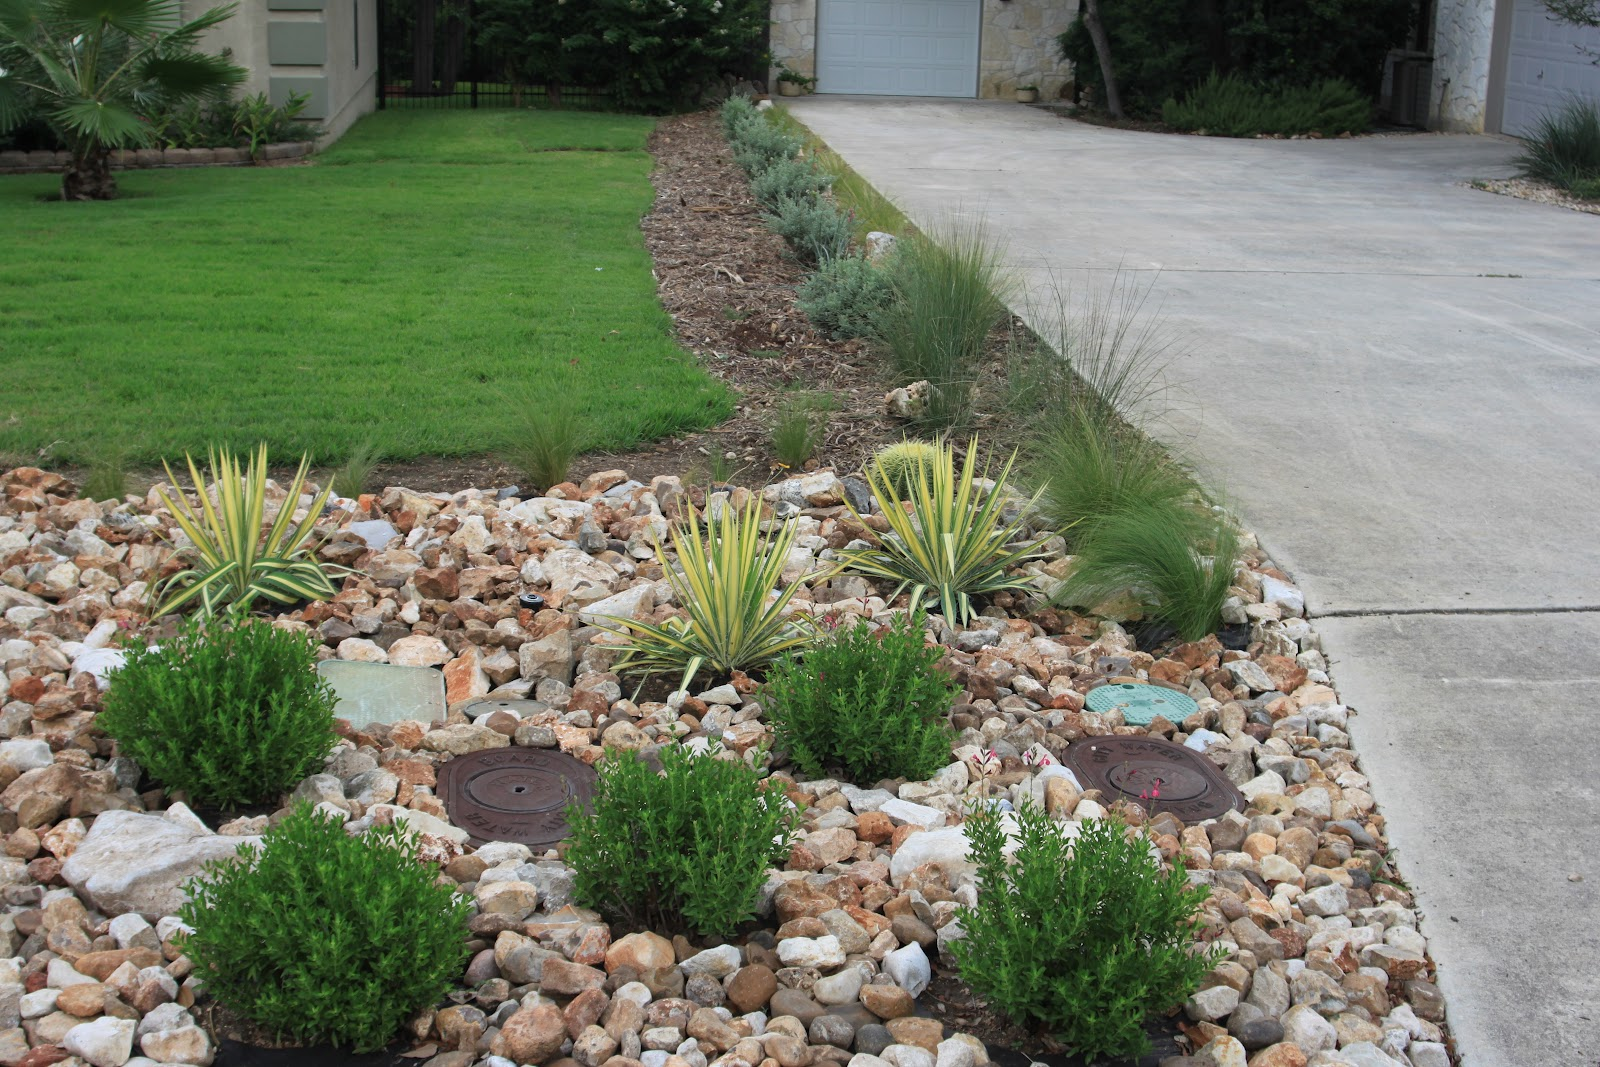 Willing landscape front lawn landscaping ideas using for Lawn landscaping ideas